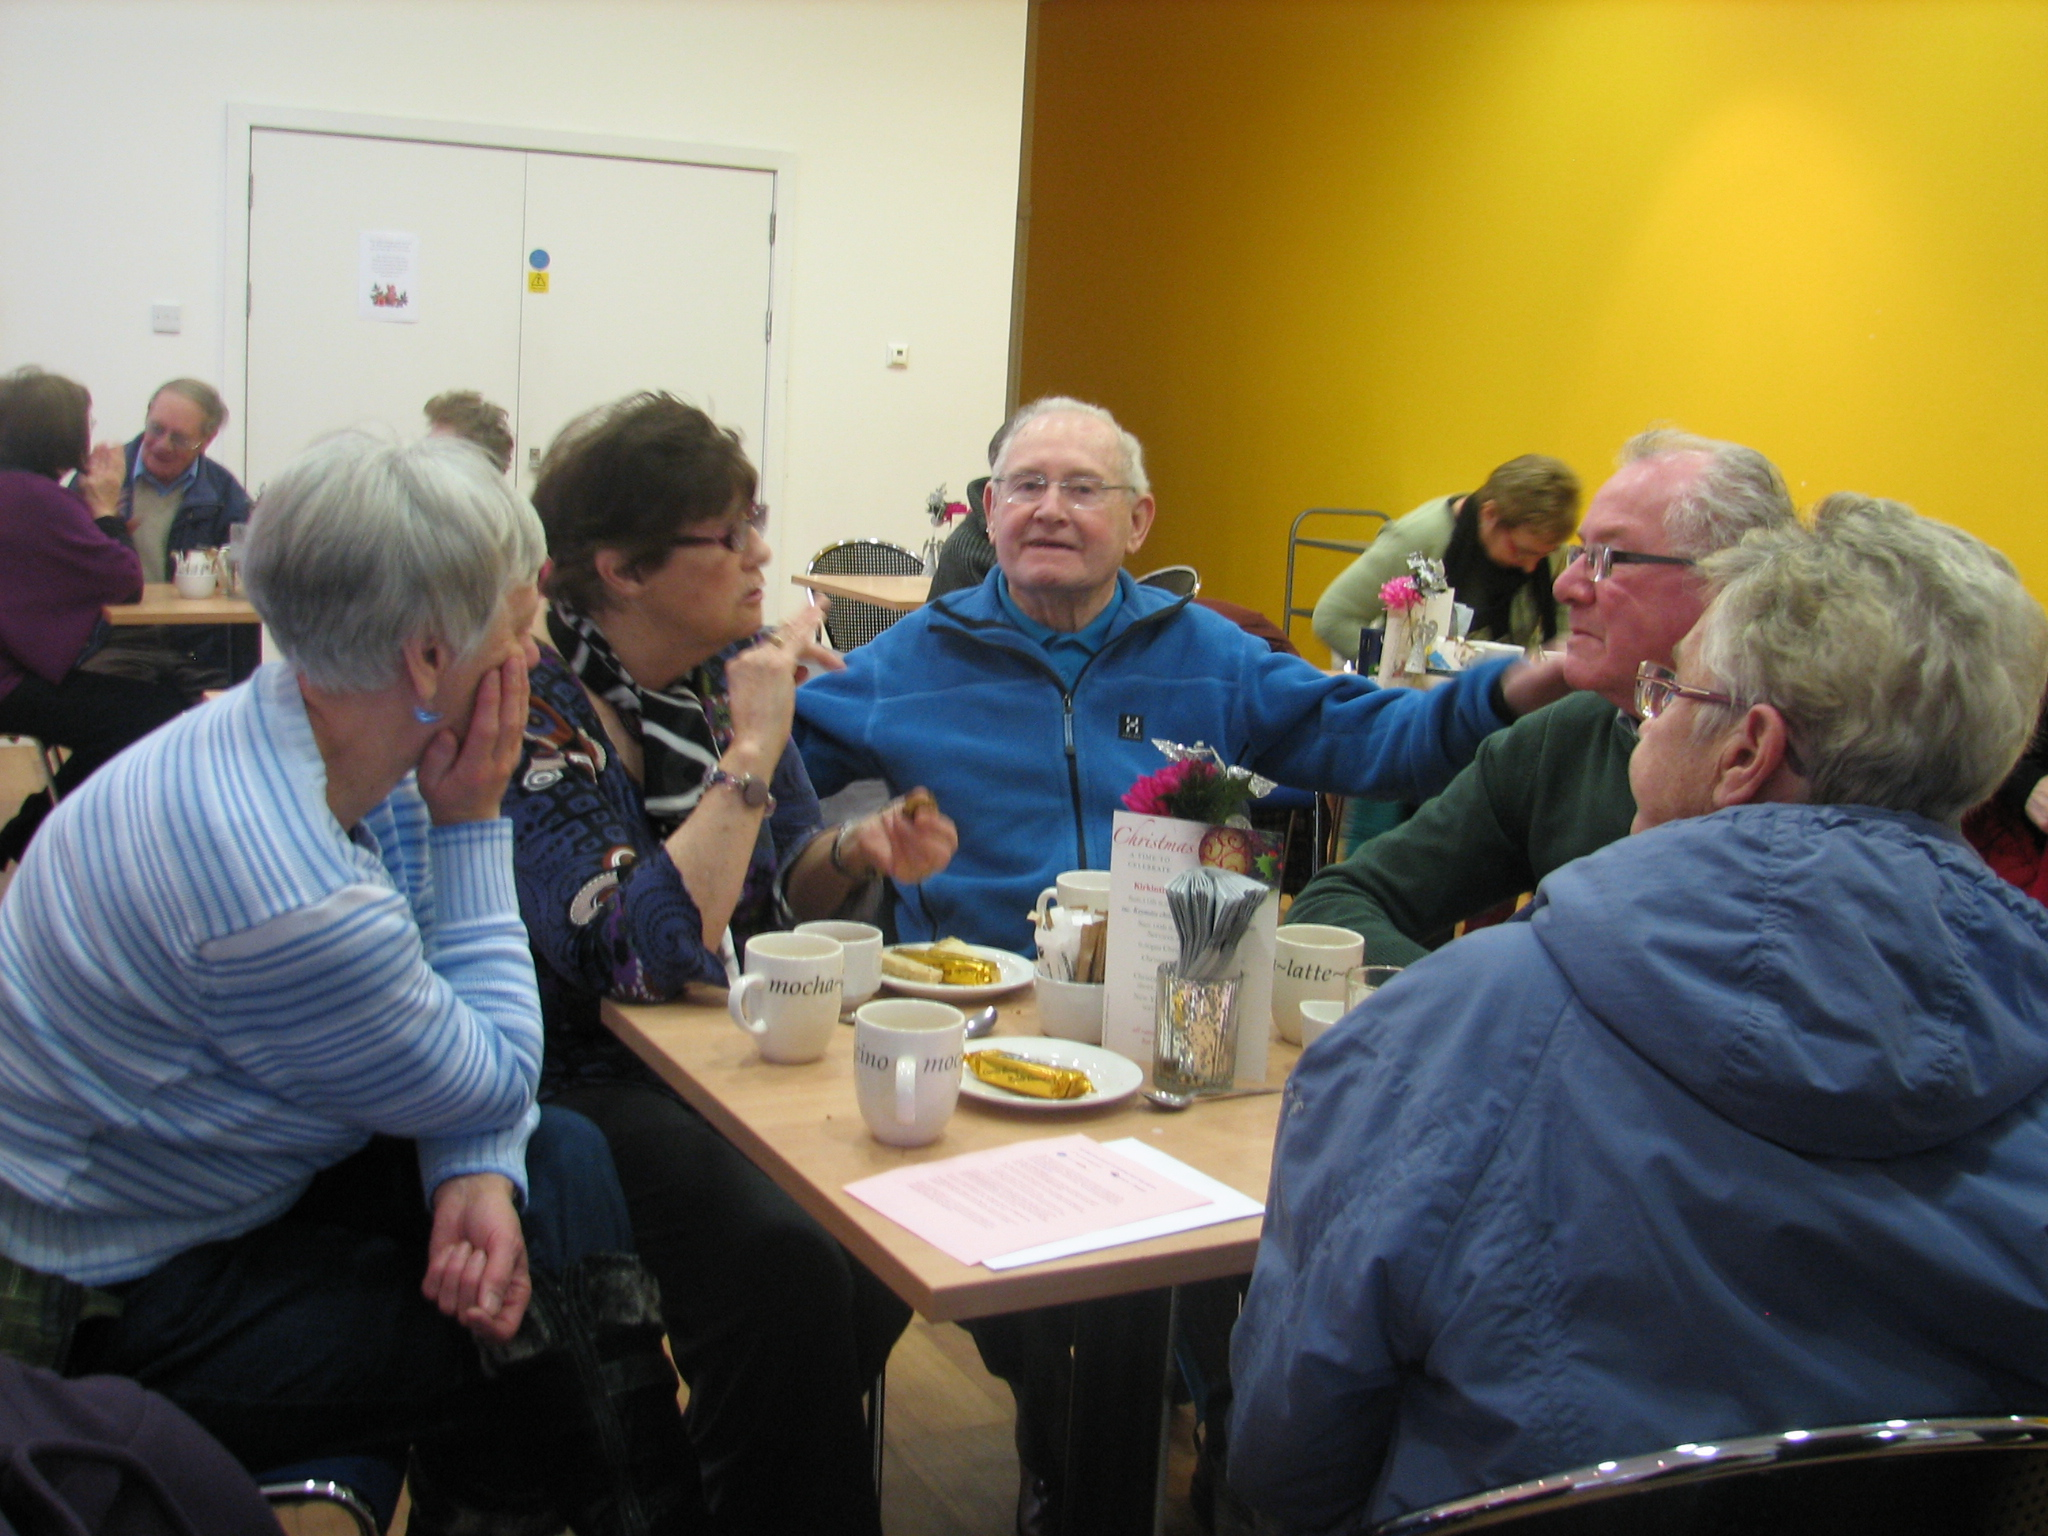 People with dementia and their carers at a meeting.